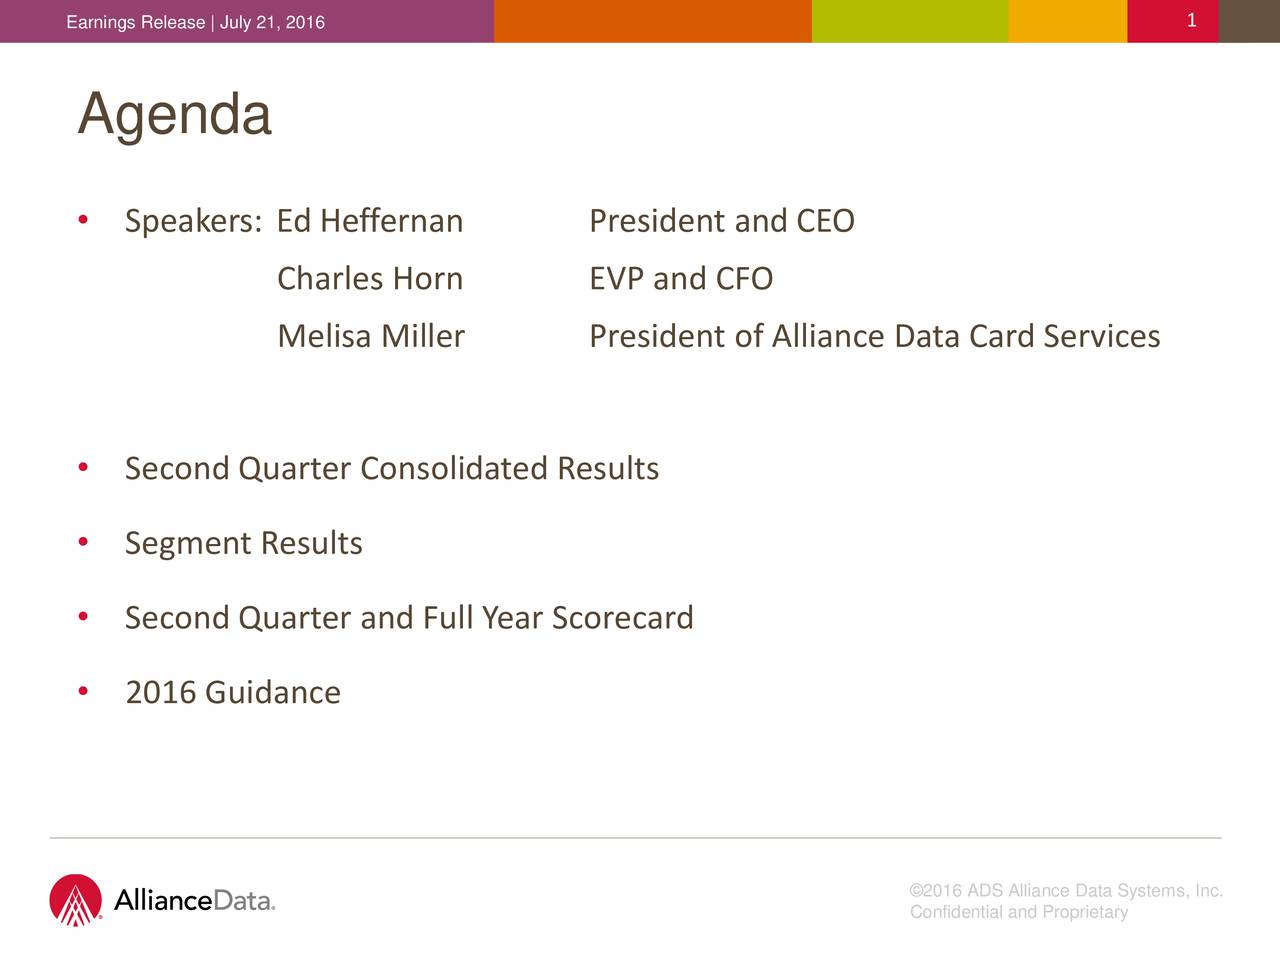 Agenda Speakers: Ed Heffernan President and CEO Charles Horn EVP and CFO Melisa Miller President of Alliance Data Card Services Second Quarter Consolidated Results Segment Results Second Quarter and Full Year Scorecard 2016 Guidance 2016 ADS Alliance Data Systems, Inc. Confidential and Proprietary